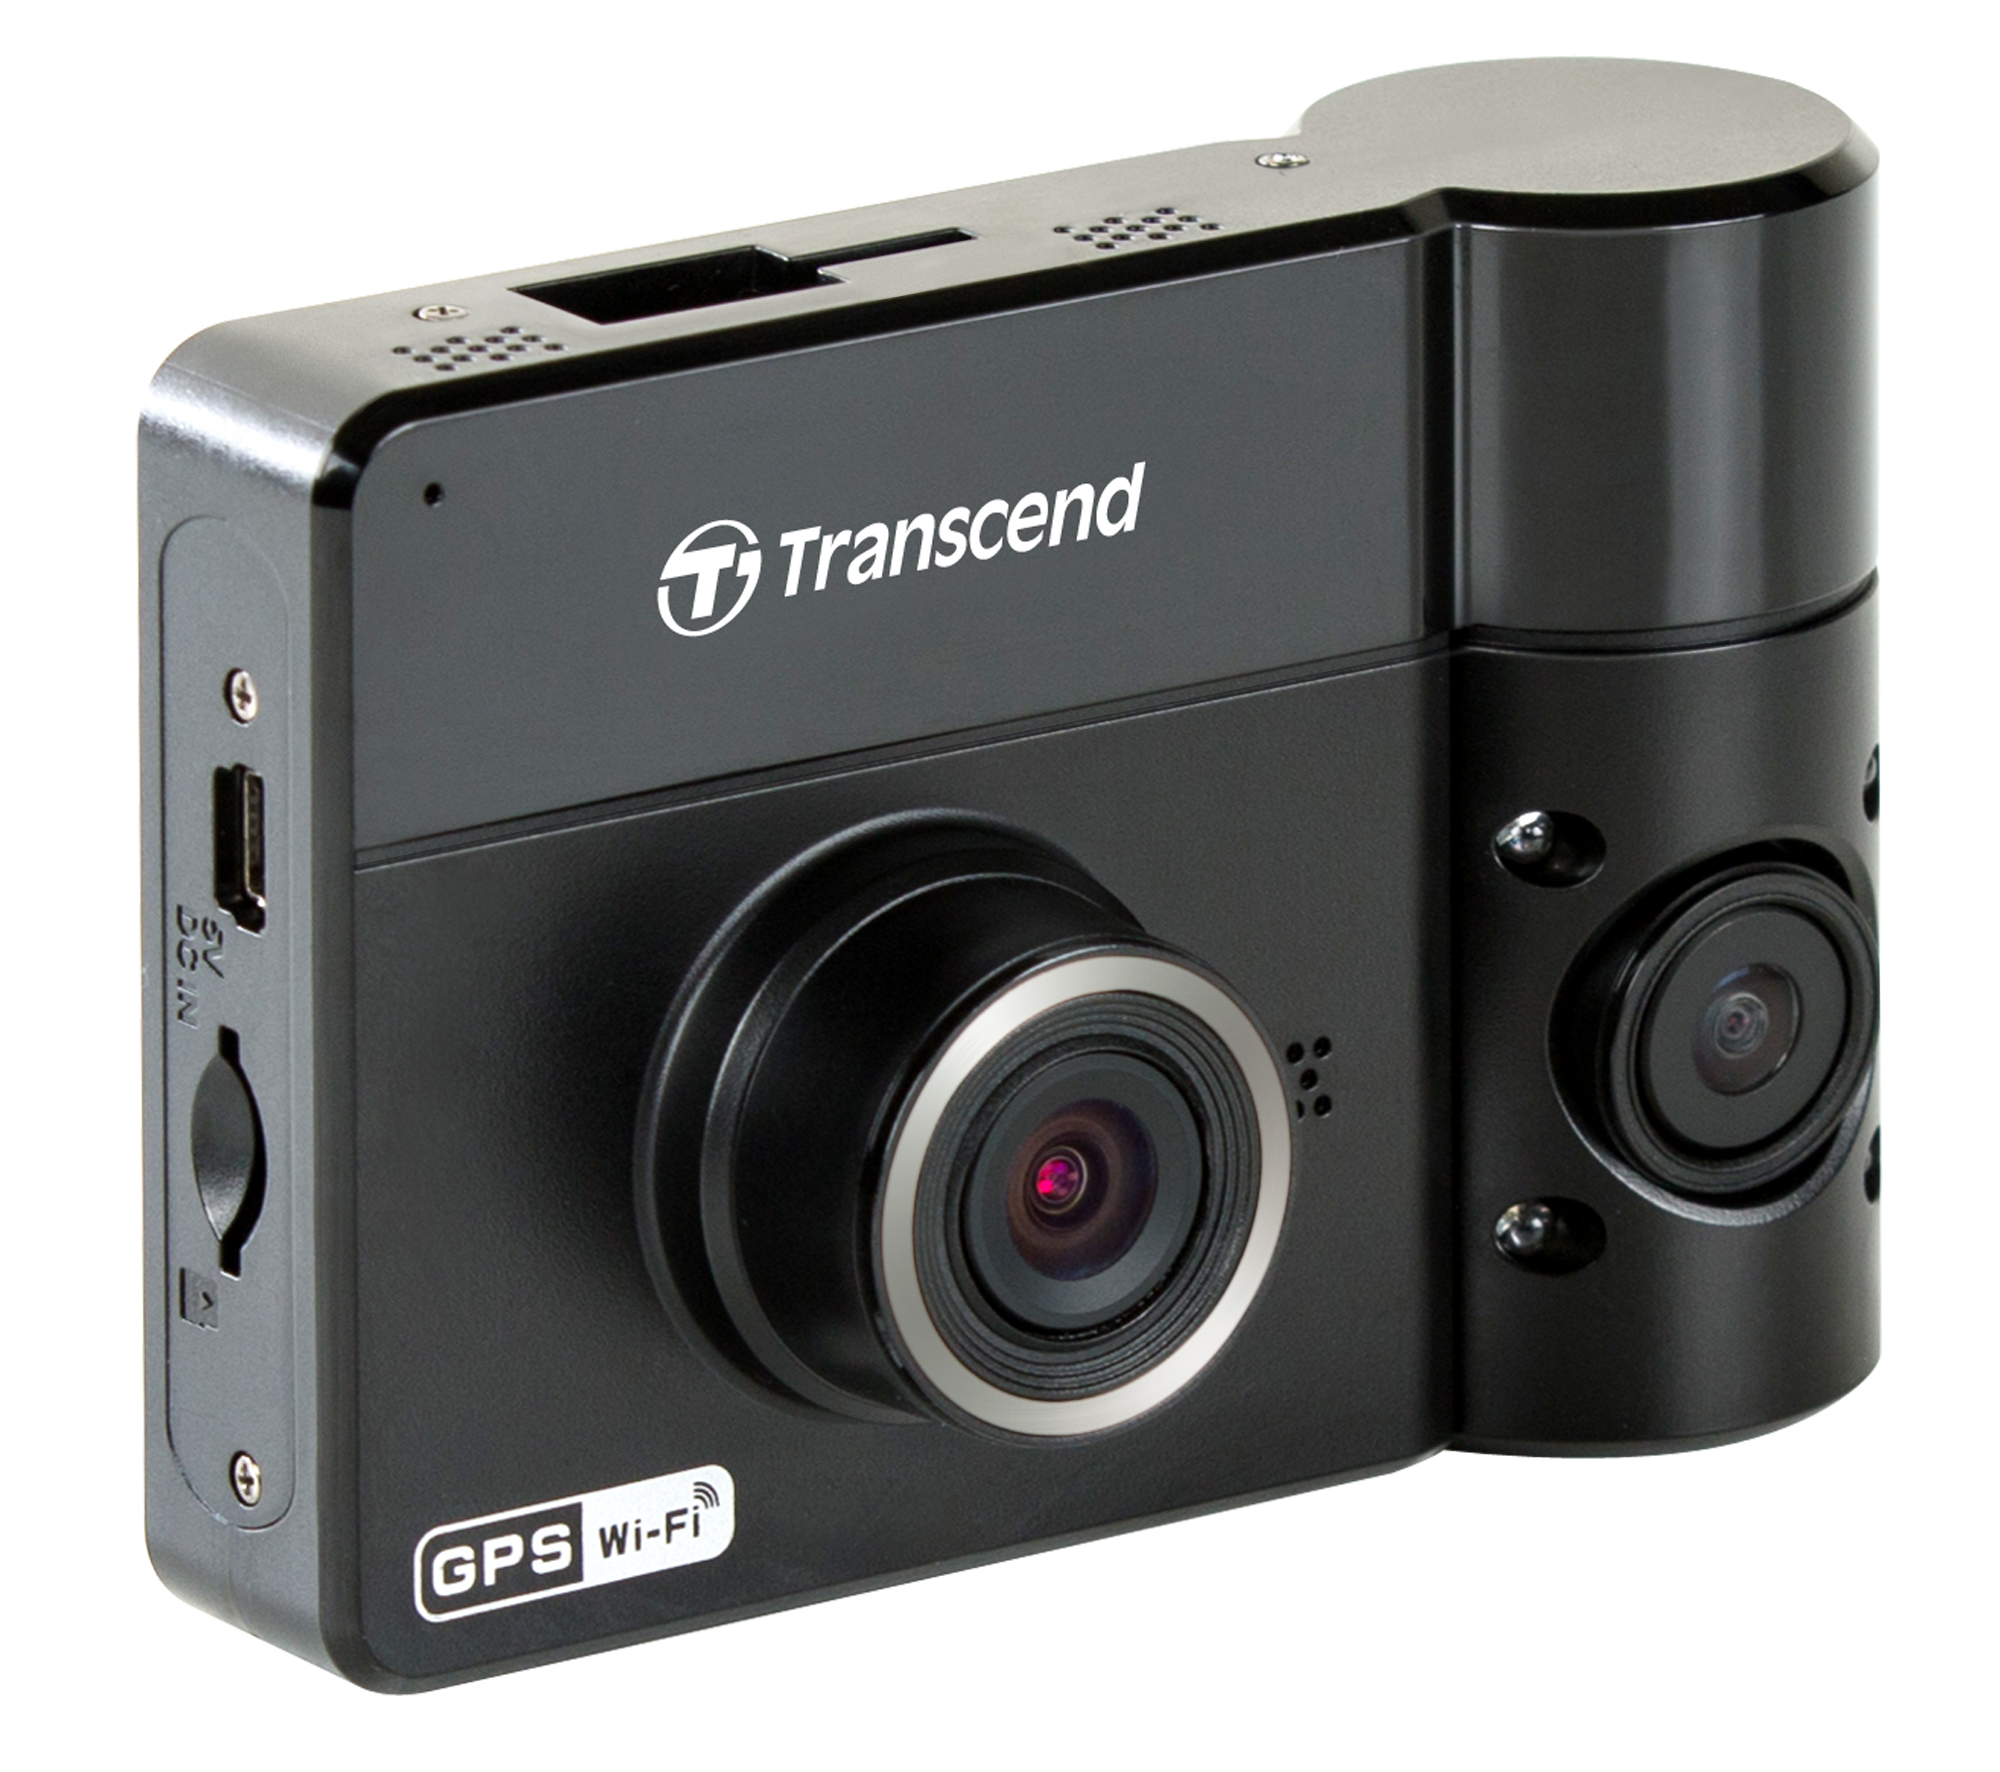 DrivePro 520 Car Video Recorder / Transcend Information, Inc.